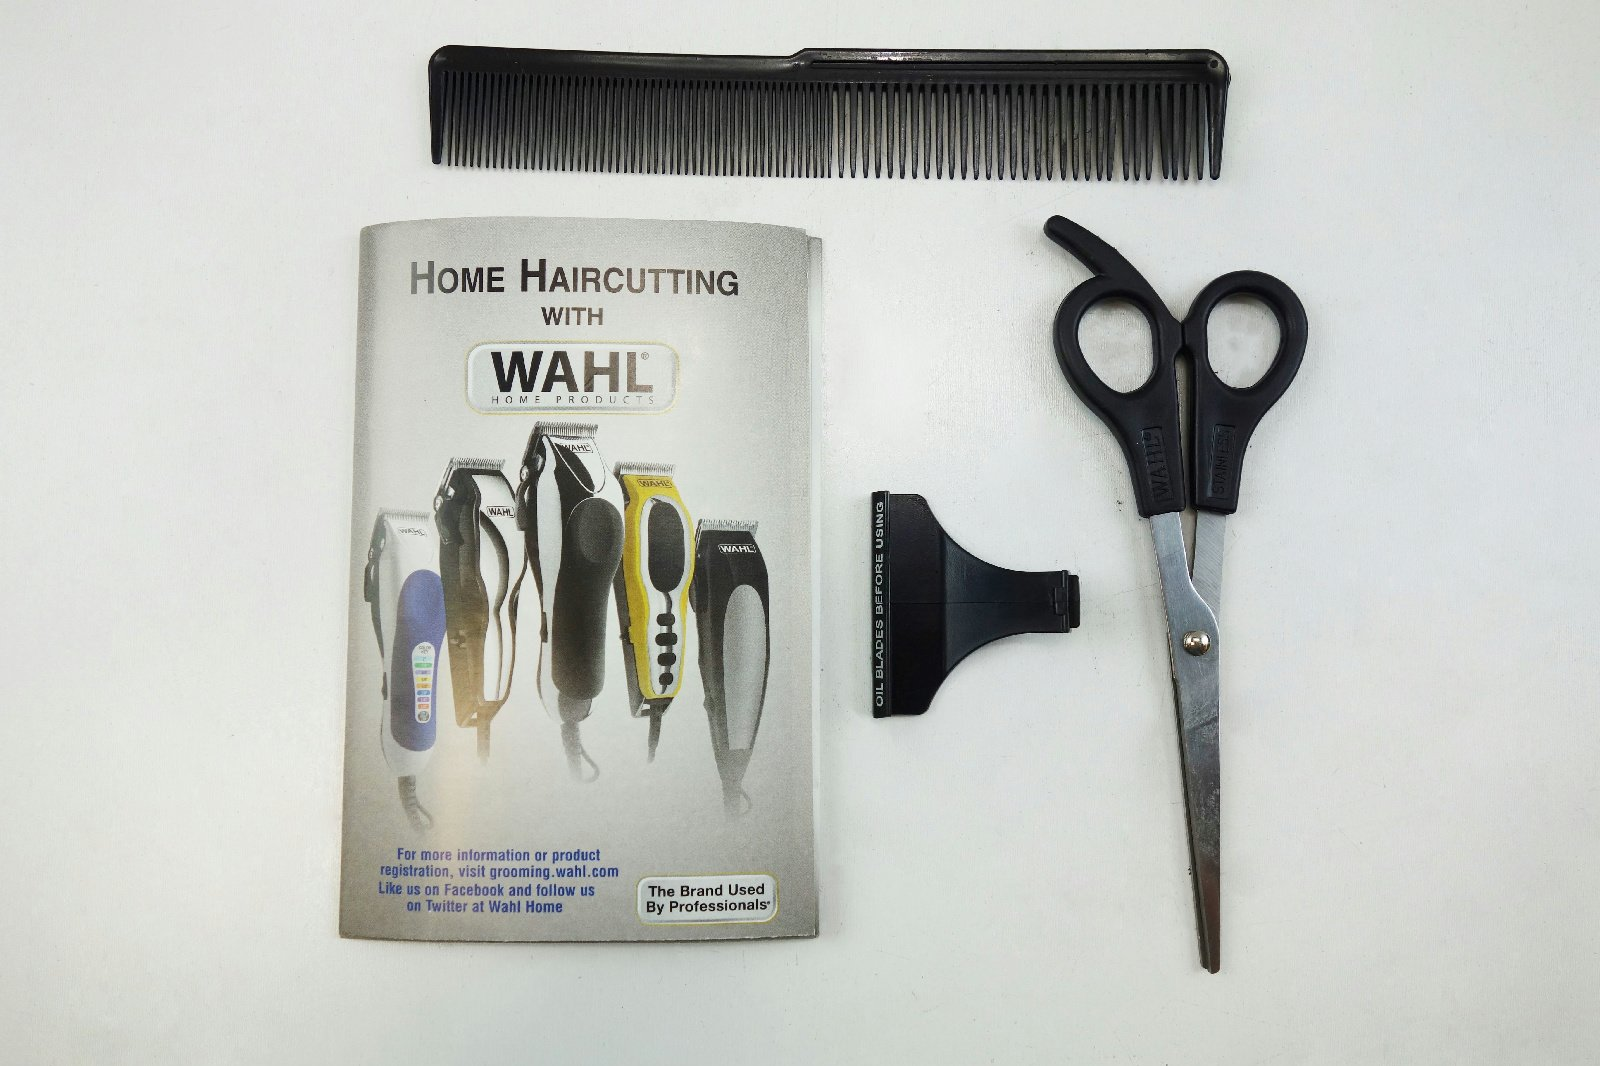 Free Wahl Deluxe Home Haircutting Kit 79300 400 Ebay Wallpaper